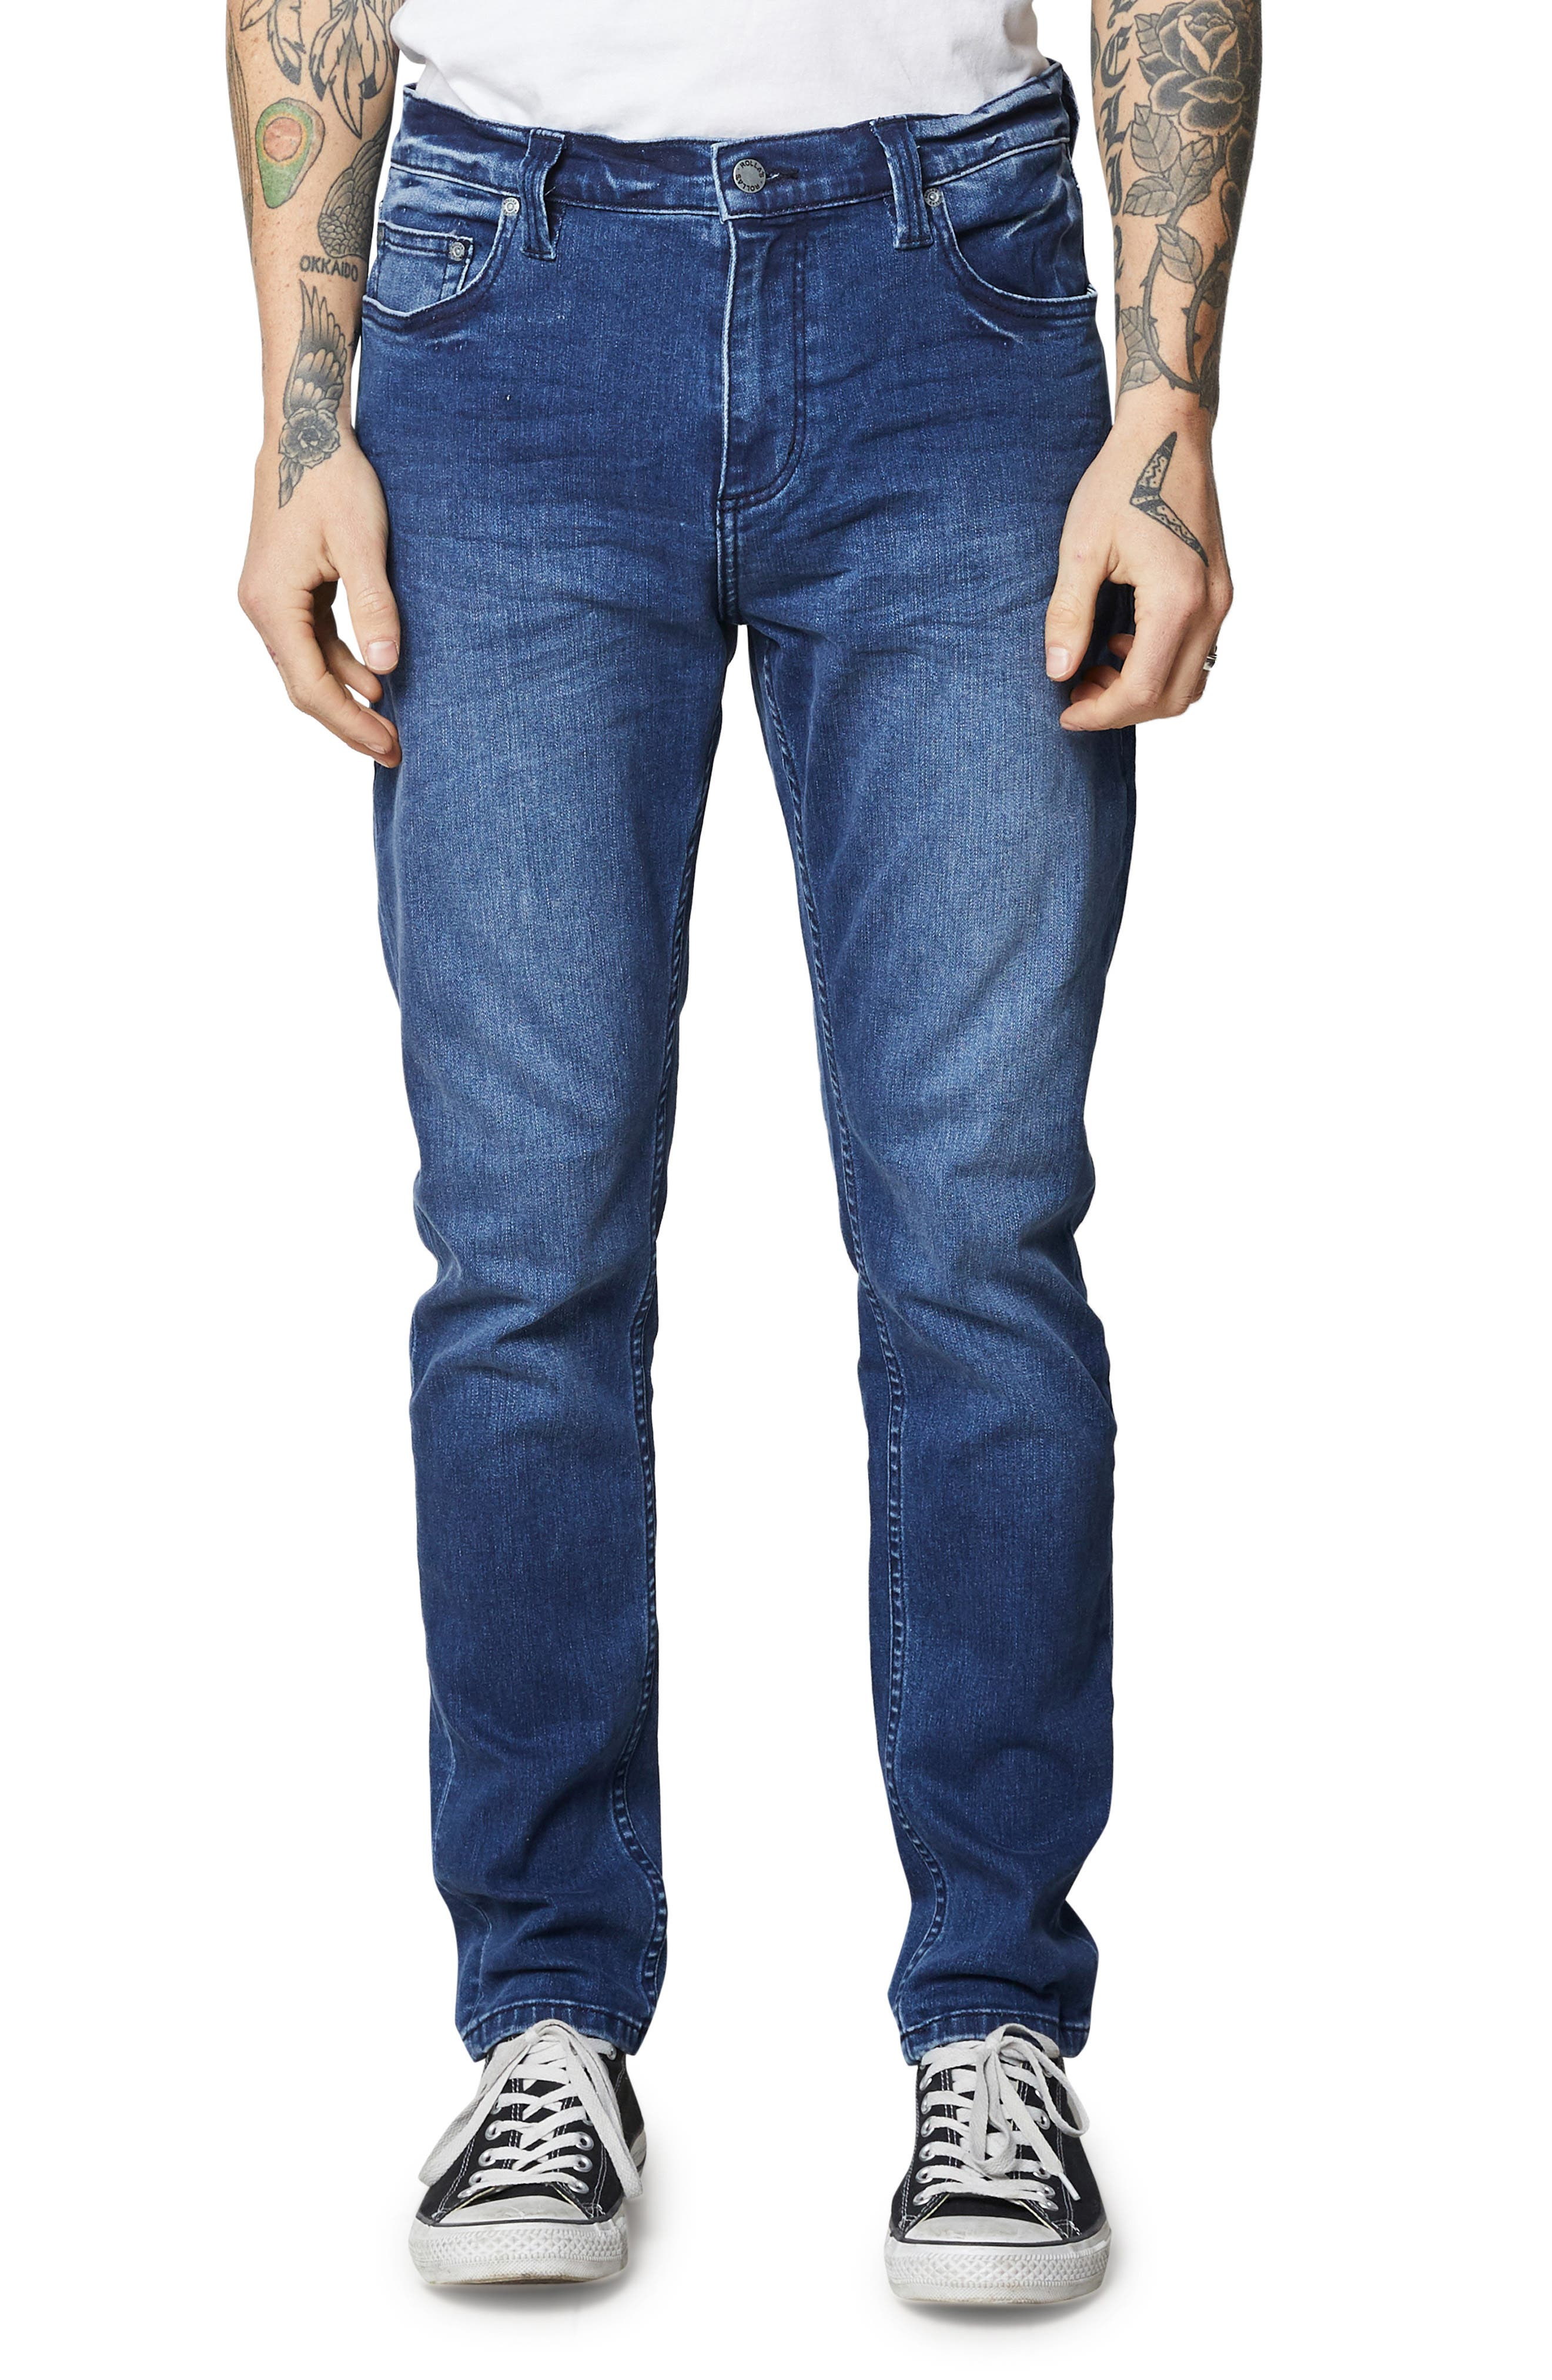 ROLLA'S,                             Tim Slims Slim Fit Jeans,                             Main thumbnail 1, color,                             FOSTERS BLUE